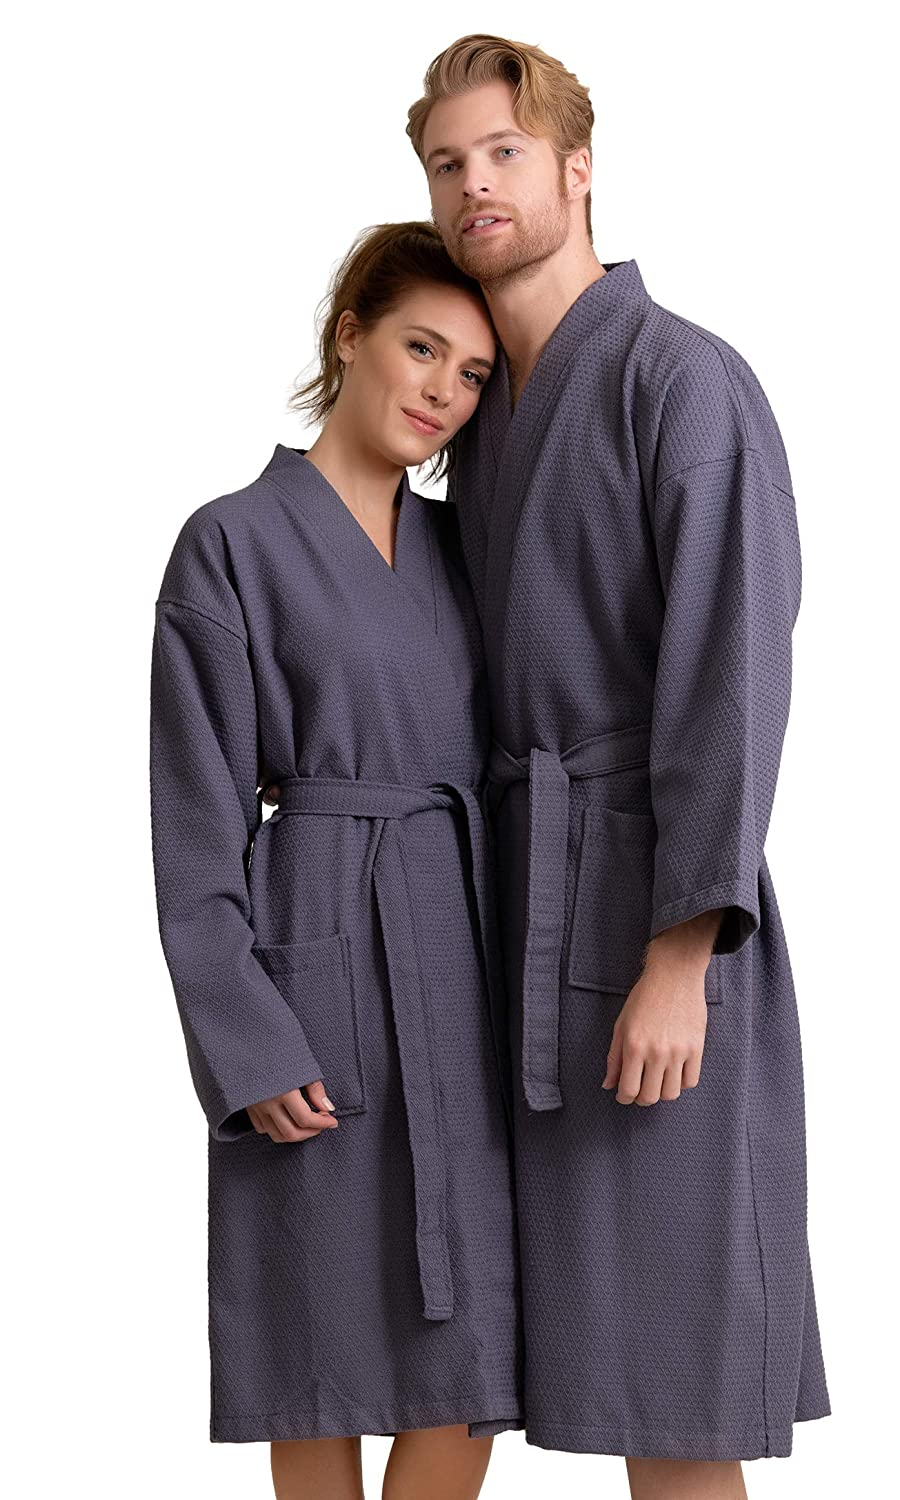 KLJR-Men Short Sleeve Summer Robe Lightweight Cotton Bathrobes